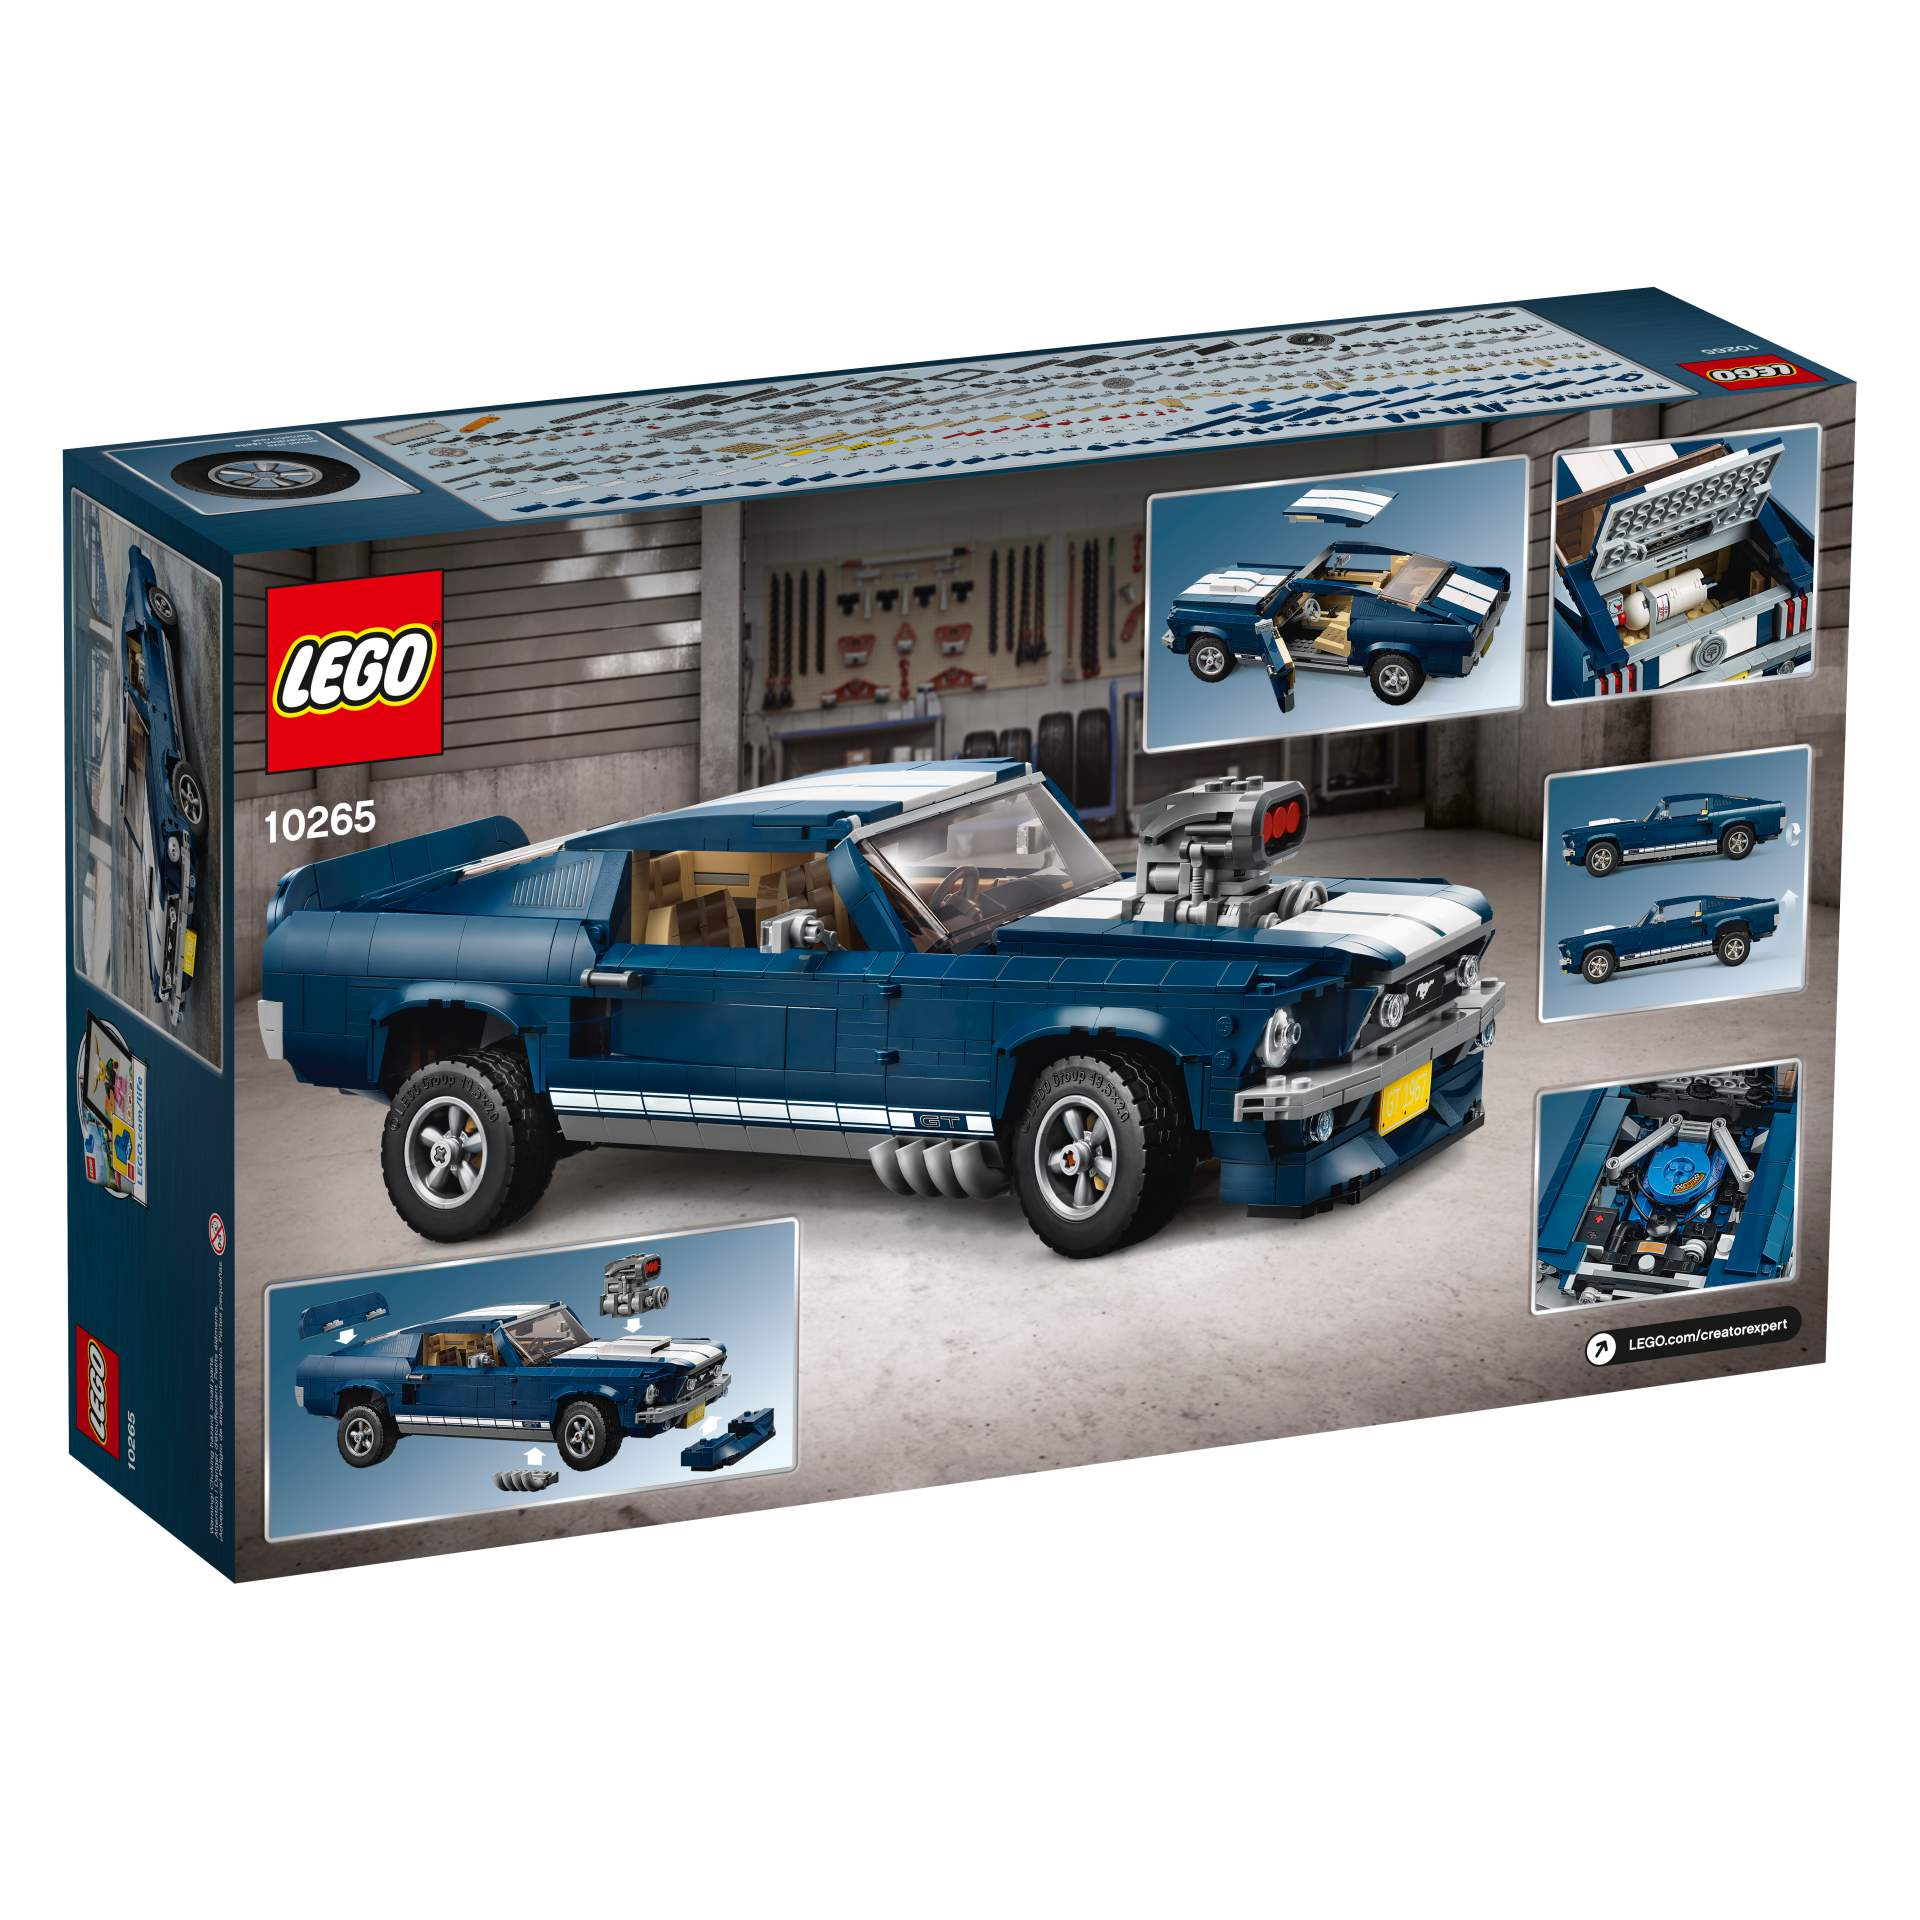 Ford Mustang GT 1967 Lego Creator Set (23)